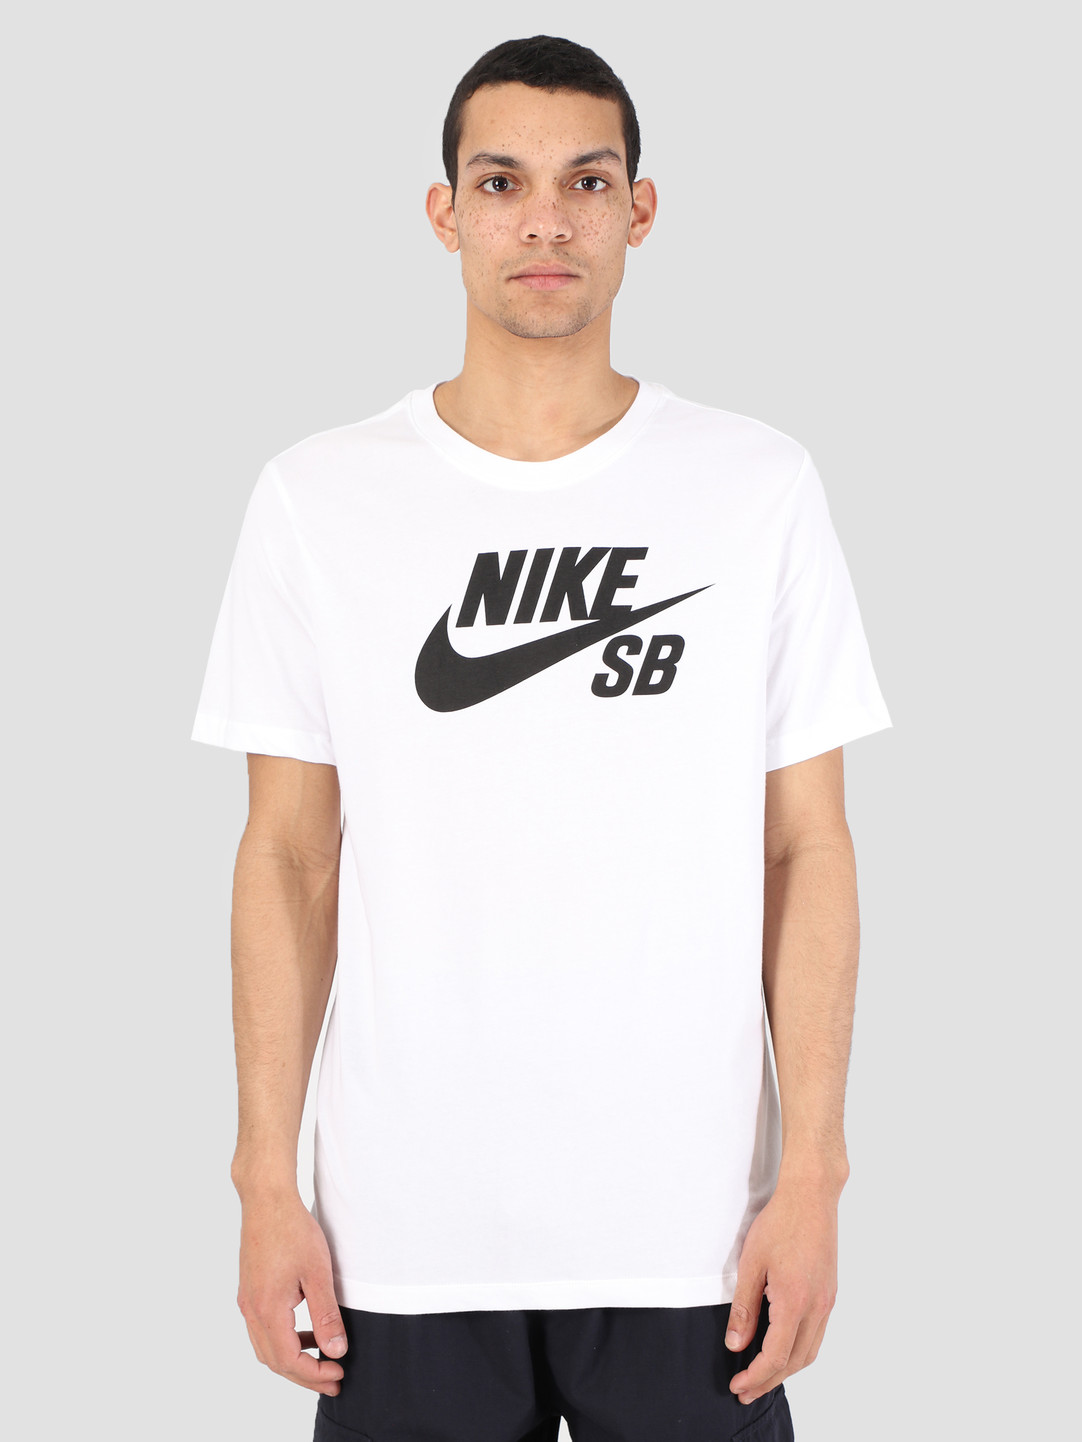 d0739065 Nike Nike SB T-Shirt Dri-Fit White Black Ar4209-100